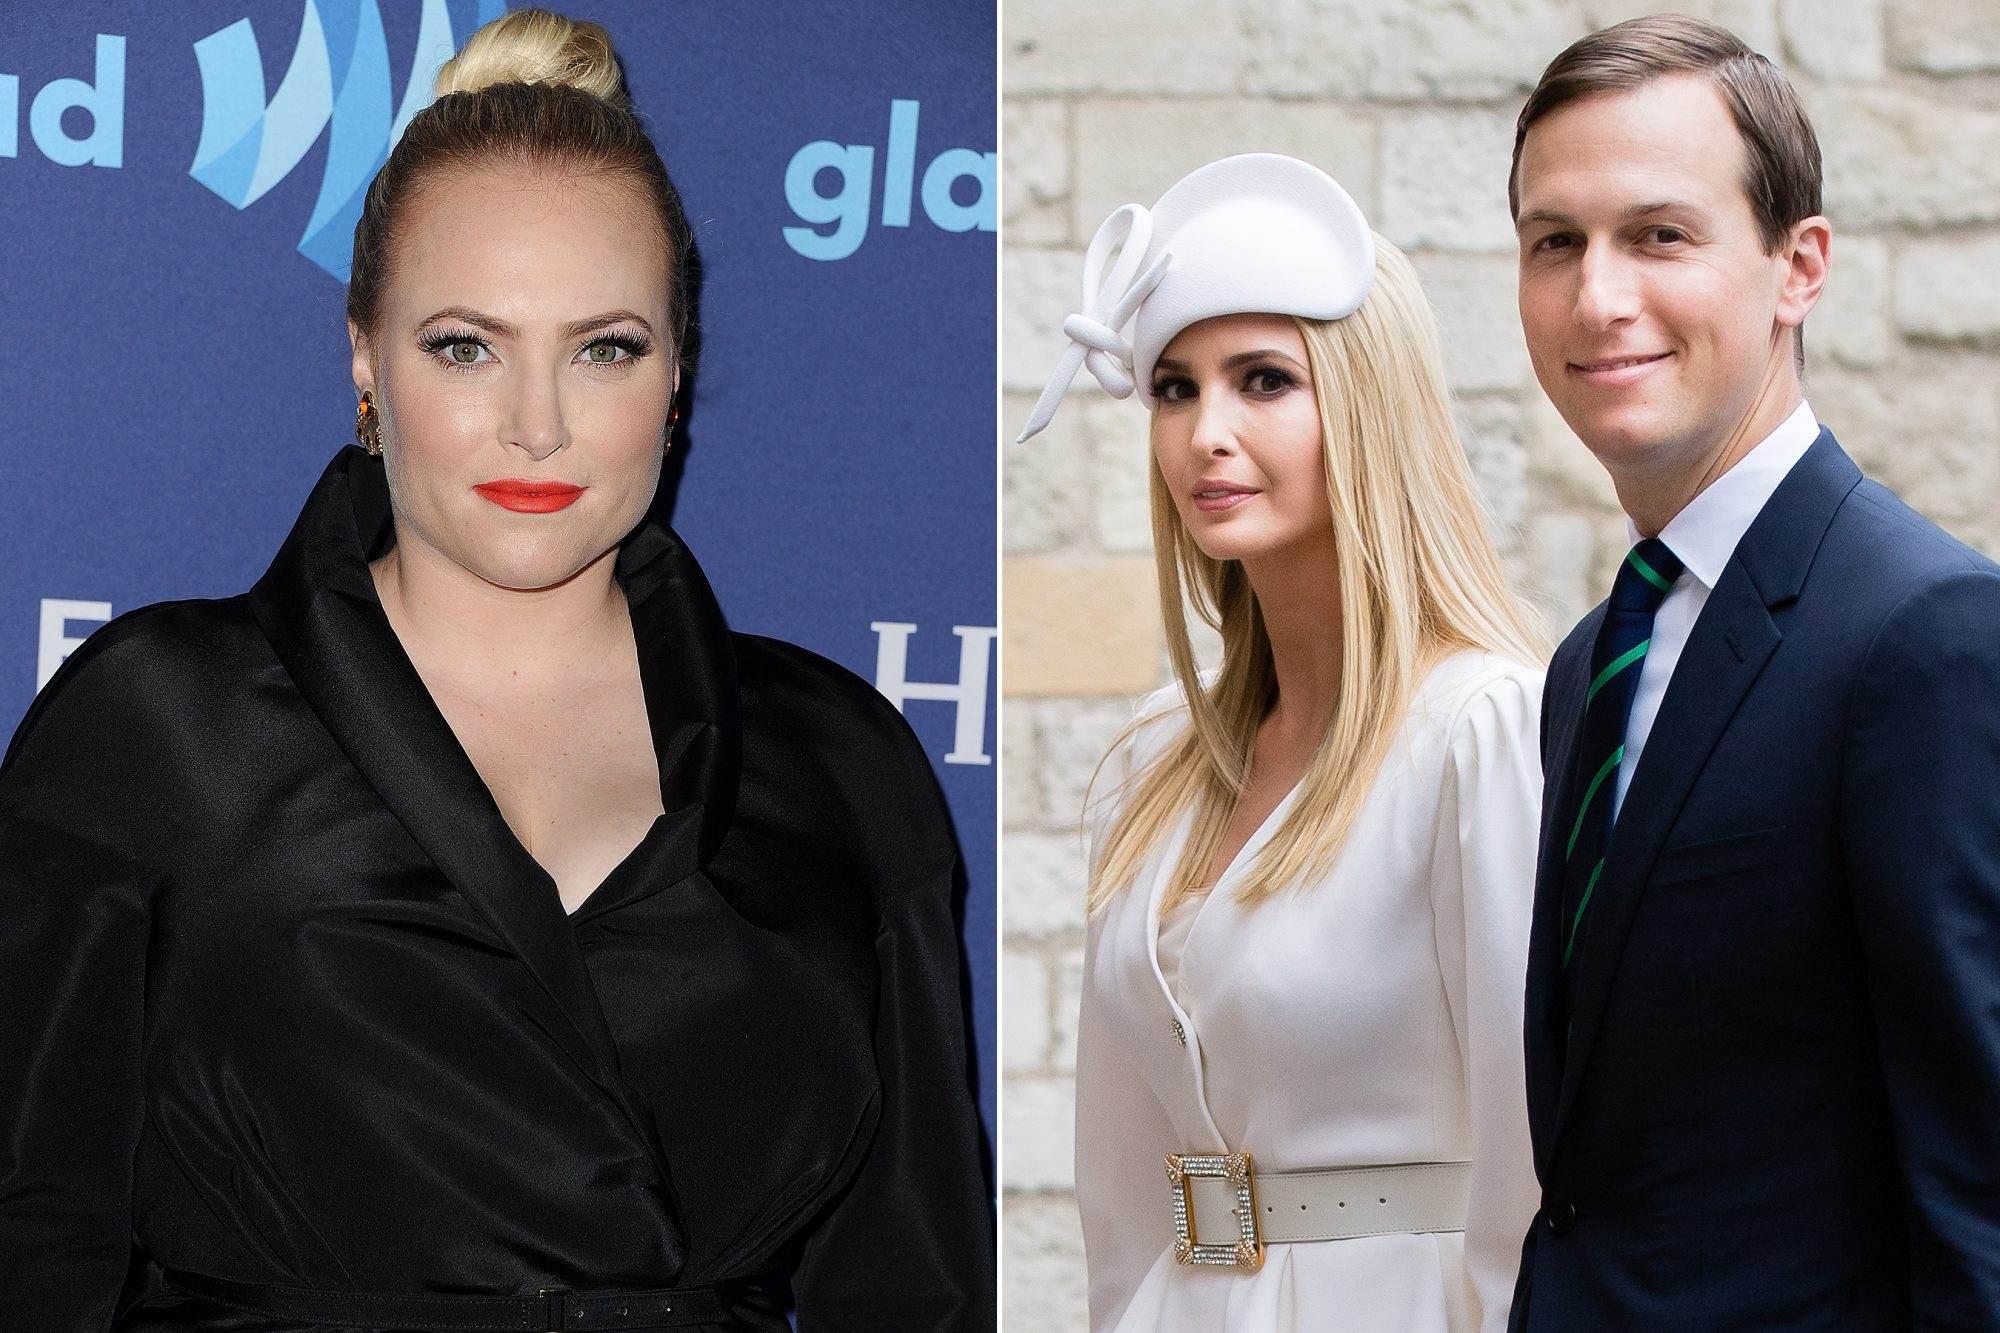 Meghan McCain, Ivanka Trump and Jared Kushner